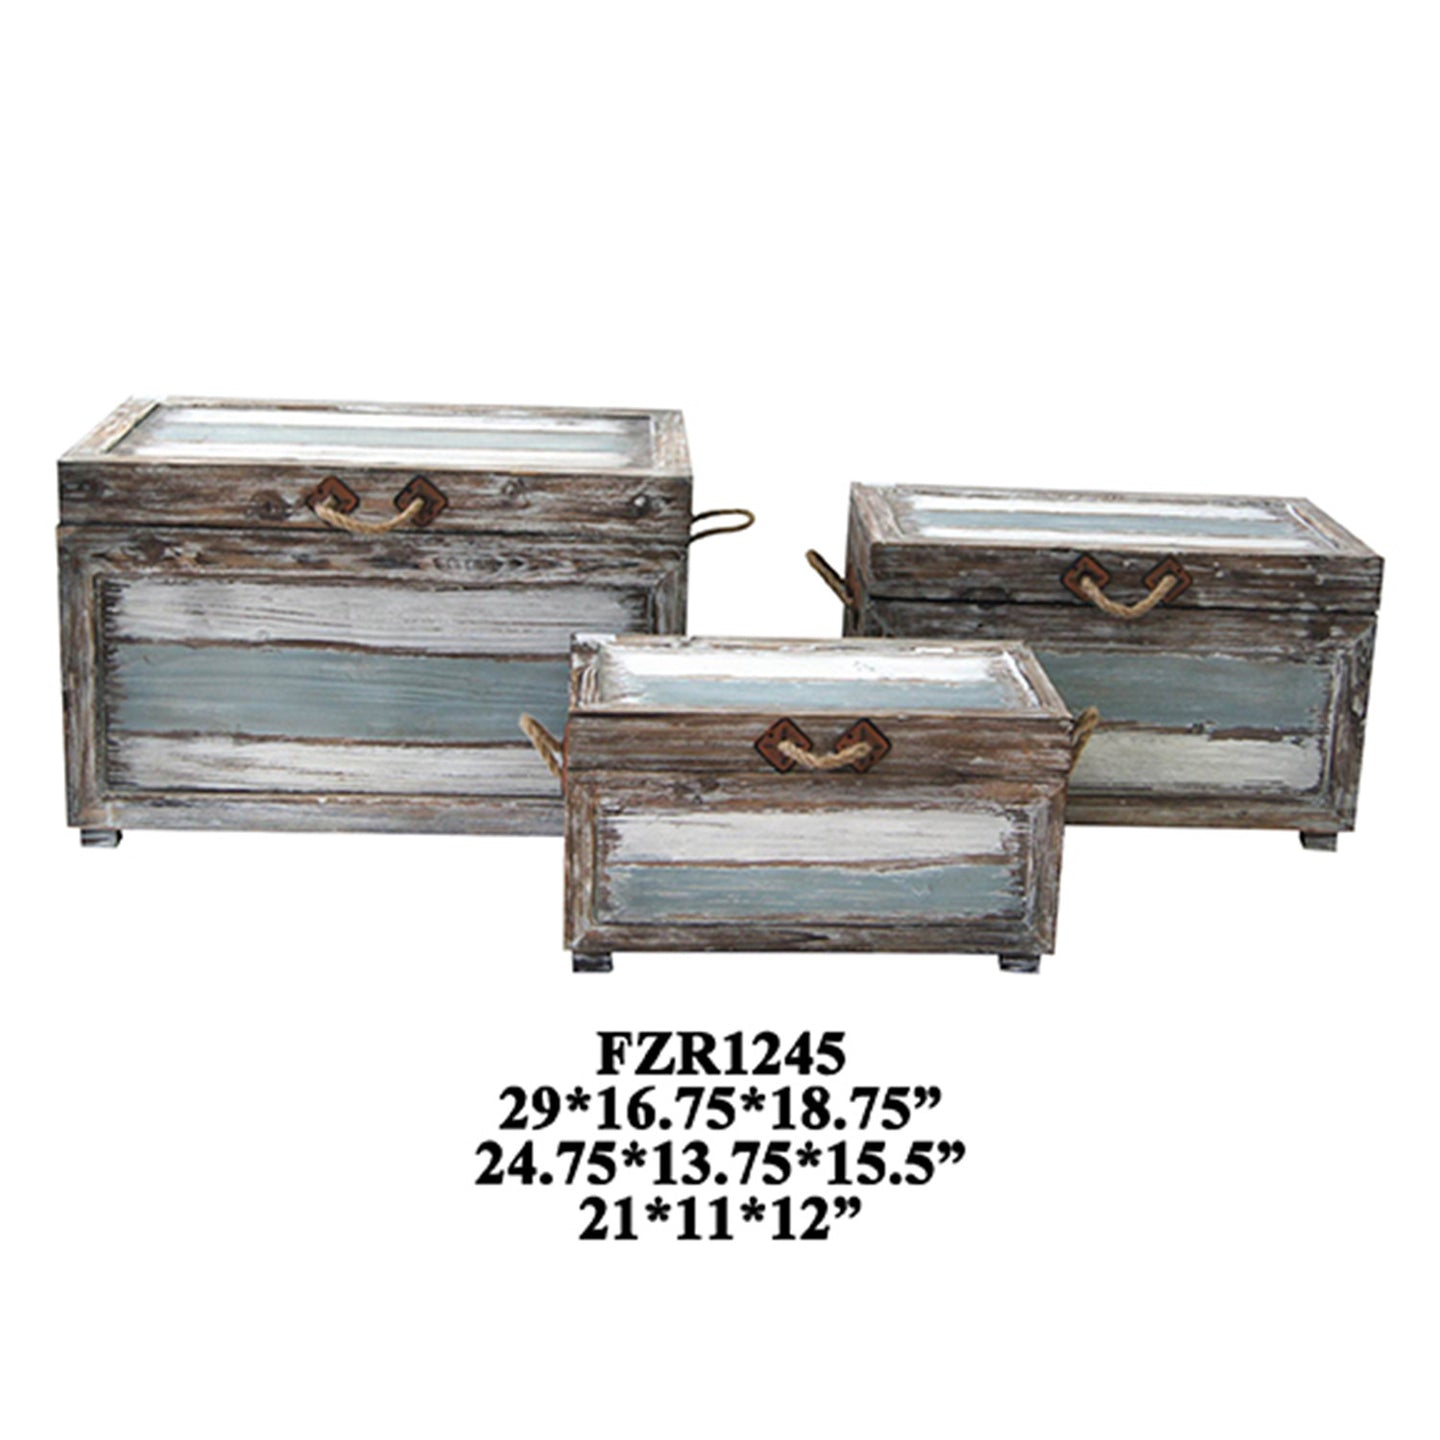 Nantucket Weathered Wood Trunks - The Rustic Furniture Store